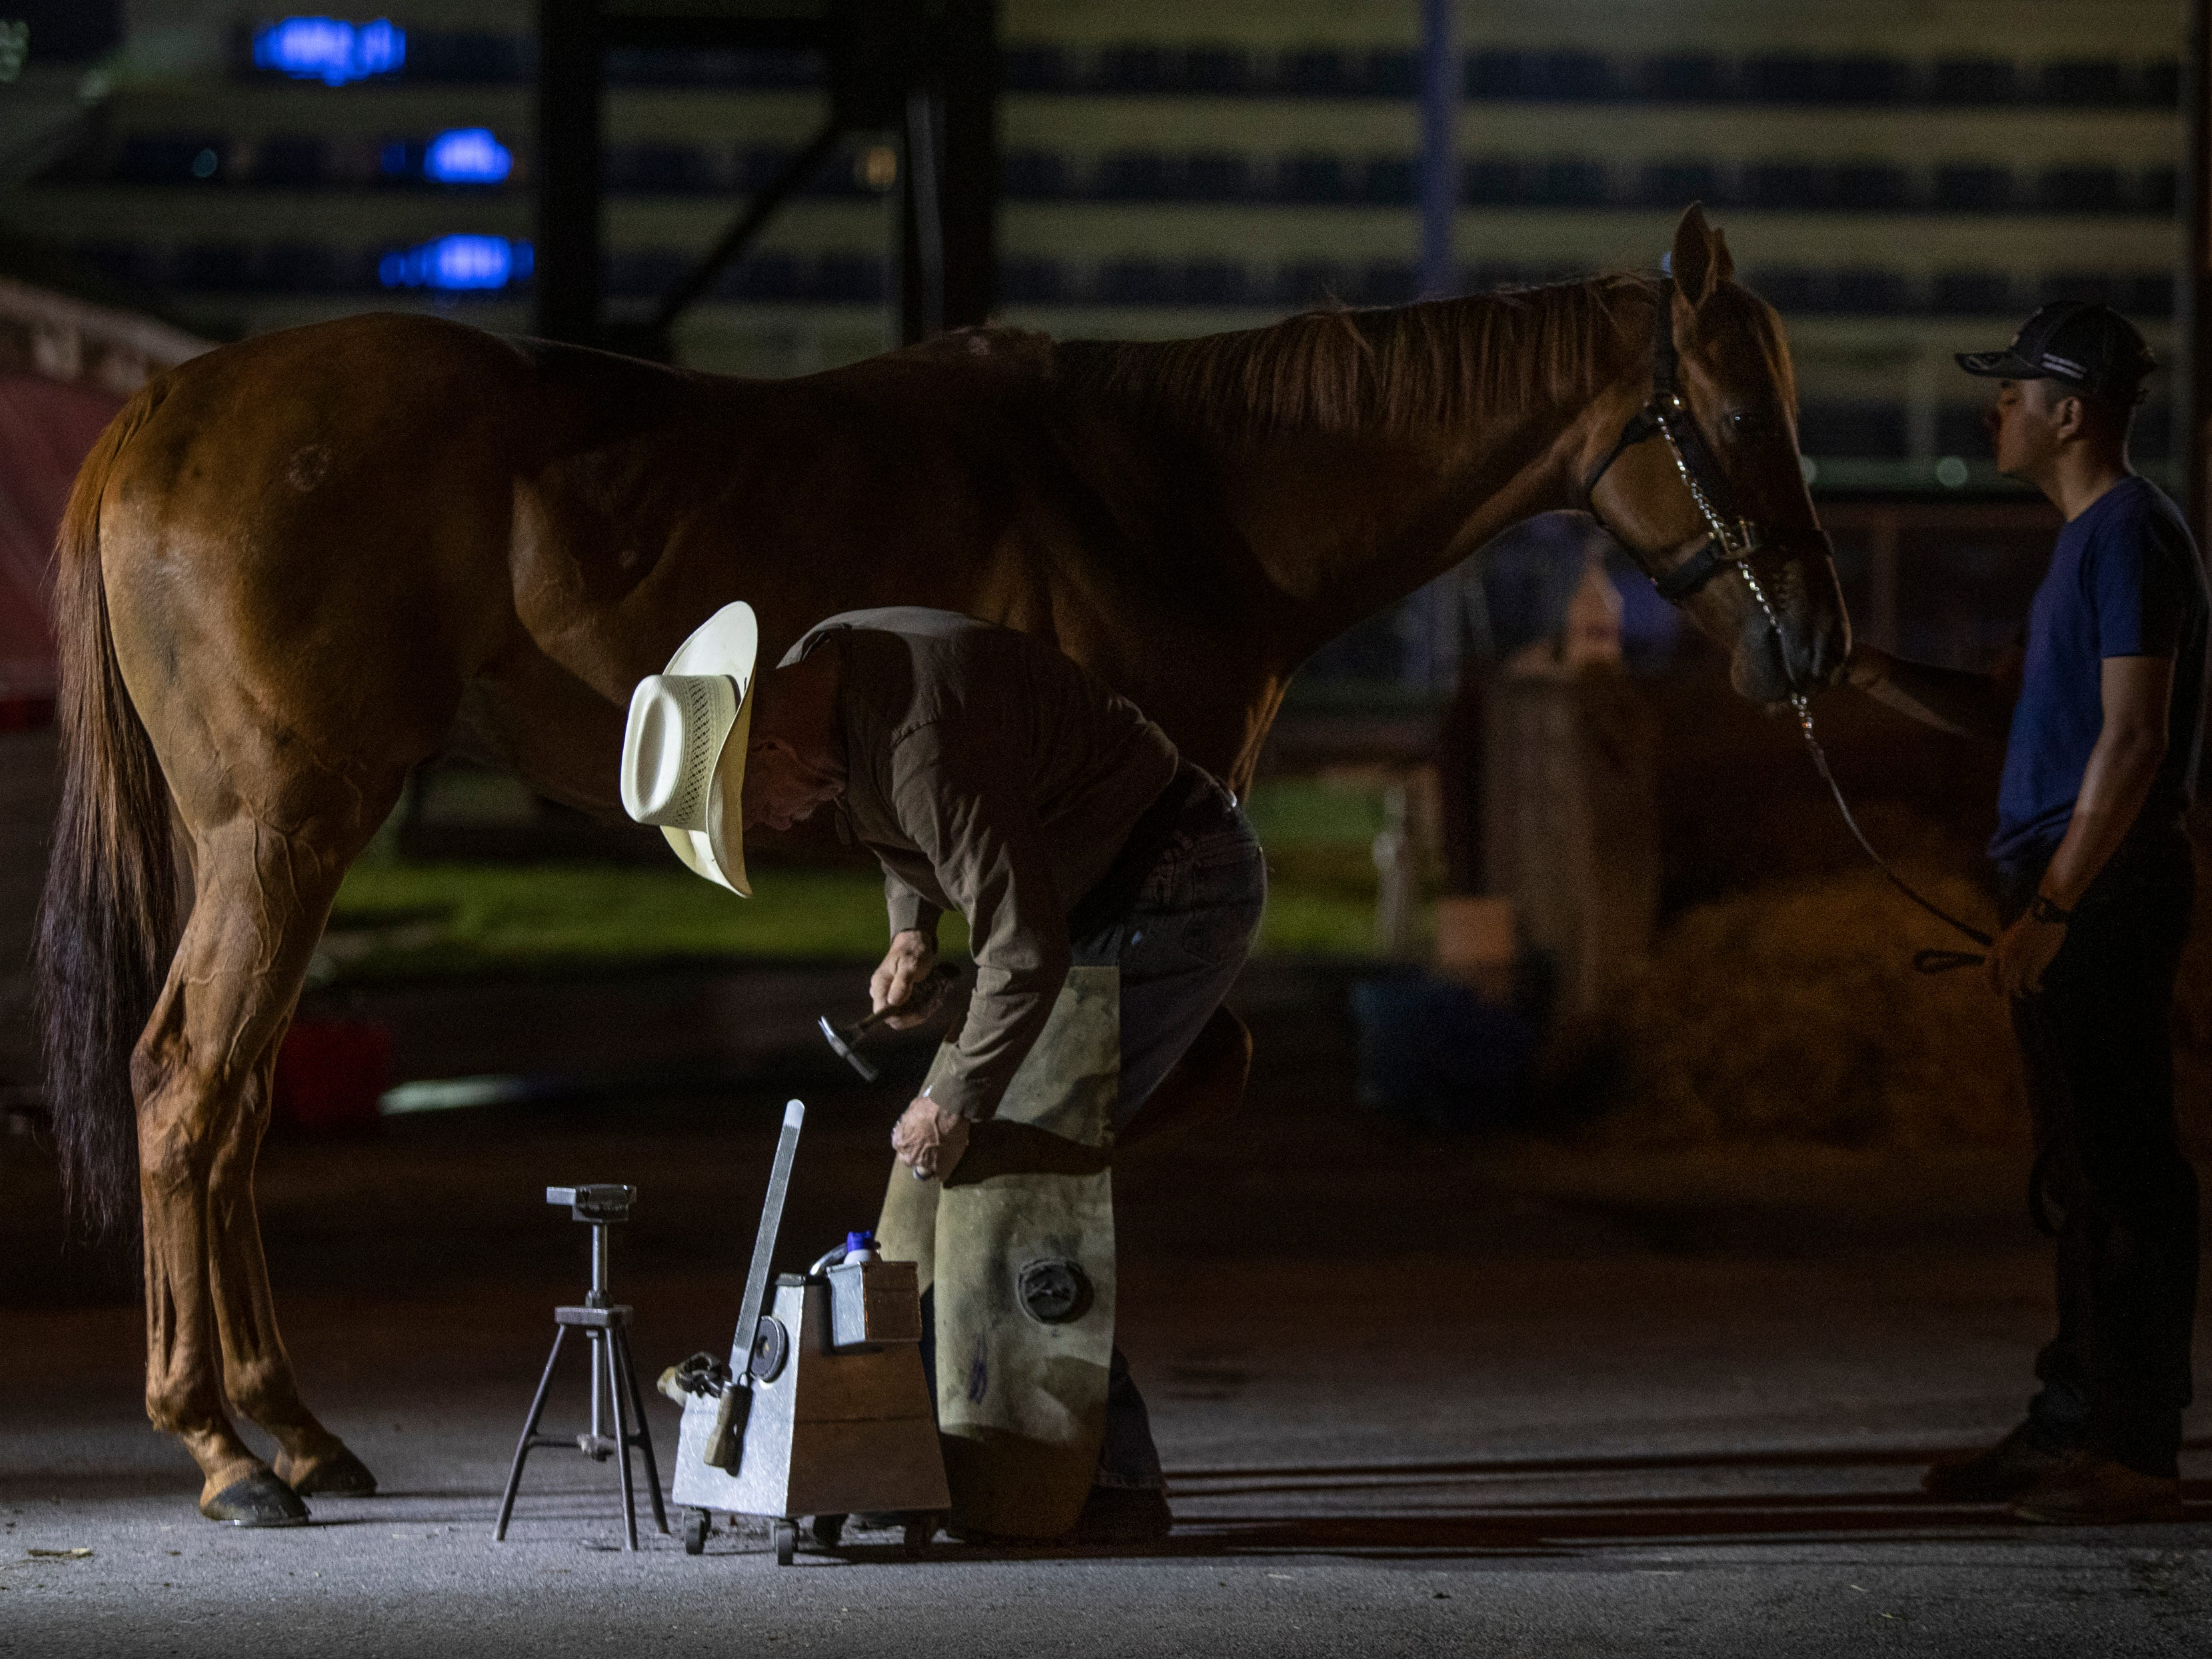 Blacksmith Steve Norman puts a new set of shoes on Carson Can in the early morning at Churchill Downs while being held by Wilner Antonio. Carson Can is trained by Greg Foley. April 23, 2019.